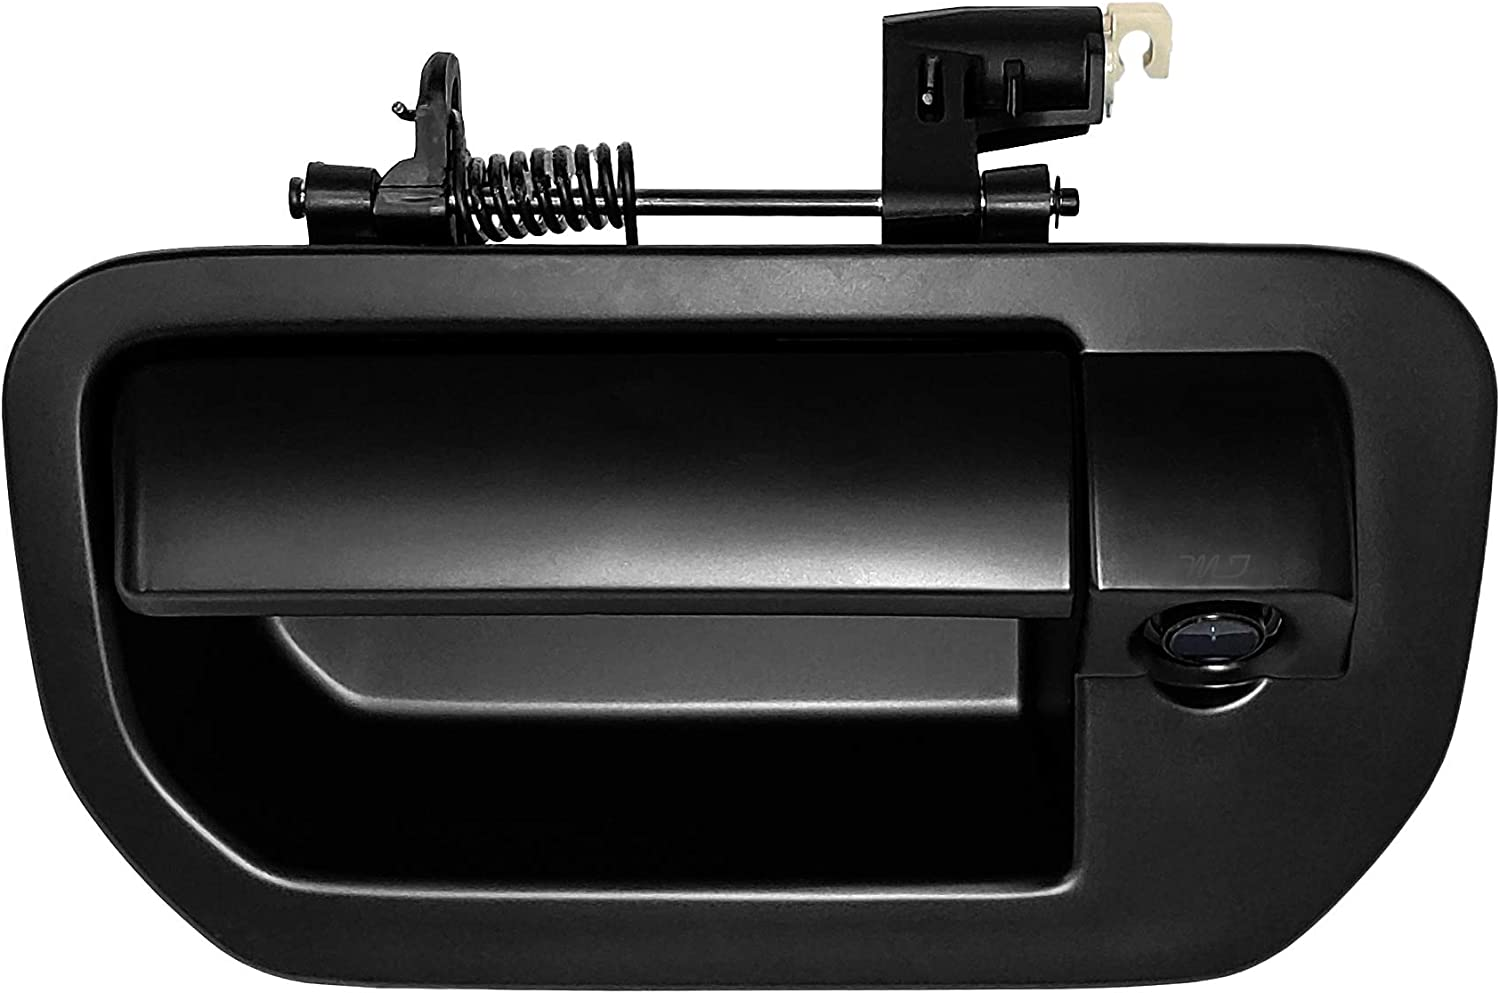 Master Tailgaters Black Tailgate Handle with Backup Camera Replacement for Honda Ridgeline 2006-2014